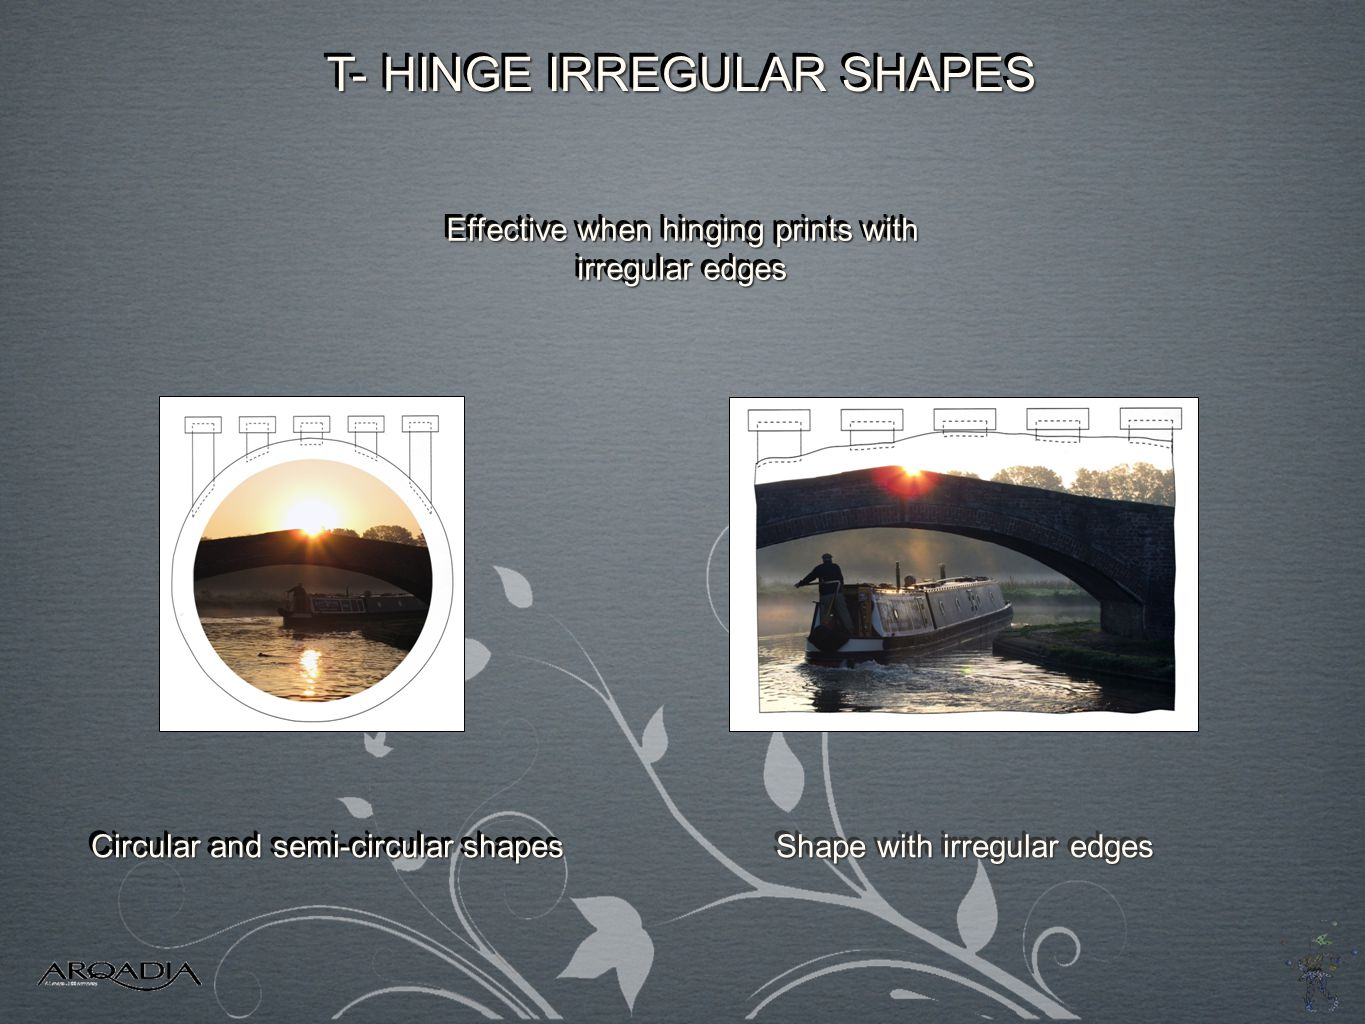 T- HINGE IRREGULAR SHAPES Effective when hinging prints with irregular edges Effective when hinging prints with irregular edges Circular and semi-circular shapes Shape with irregular edges